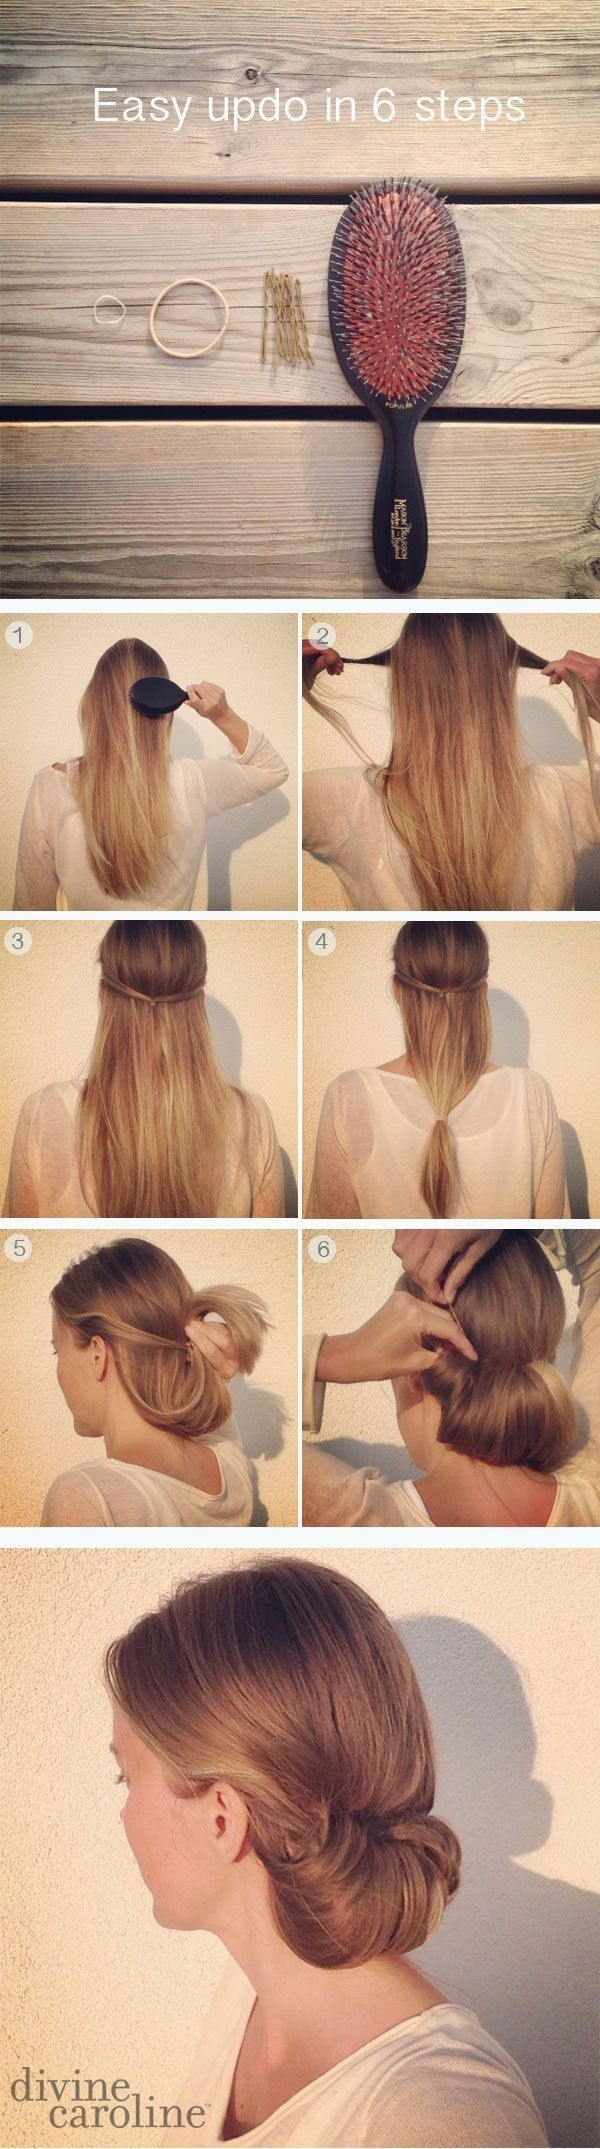 Easy Updo Hairstyle for Long Hair